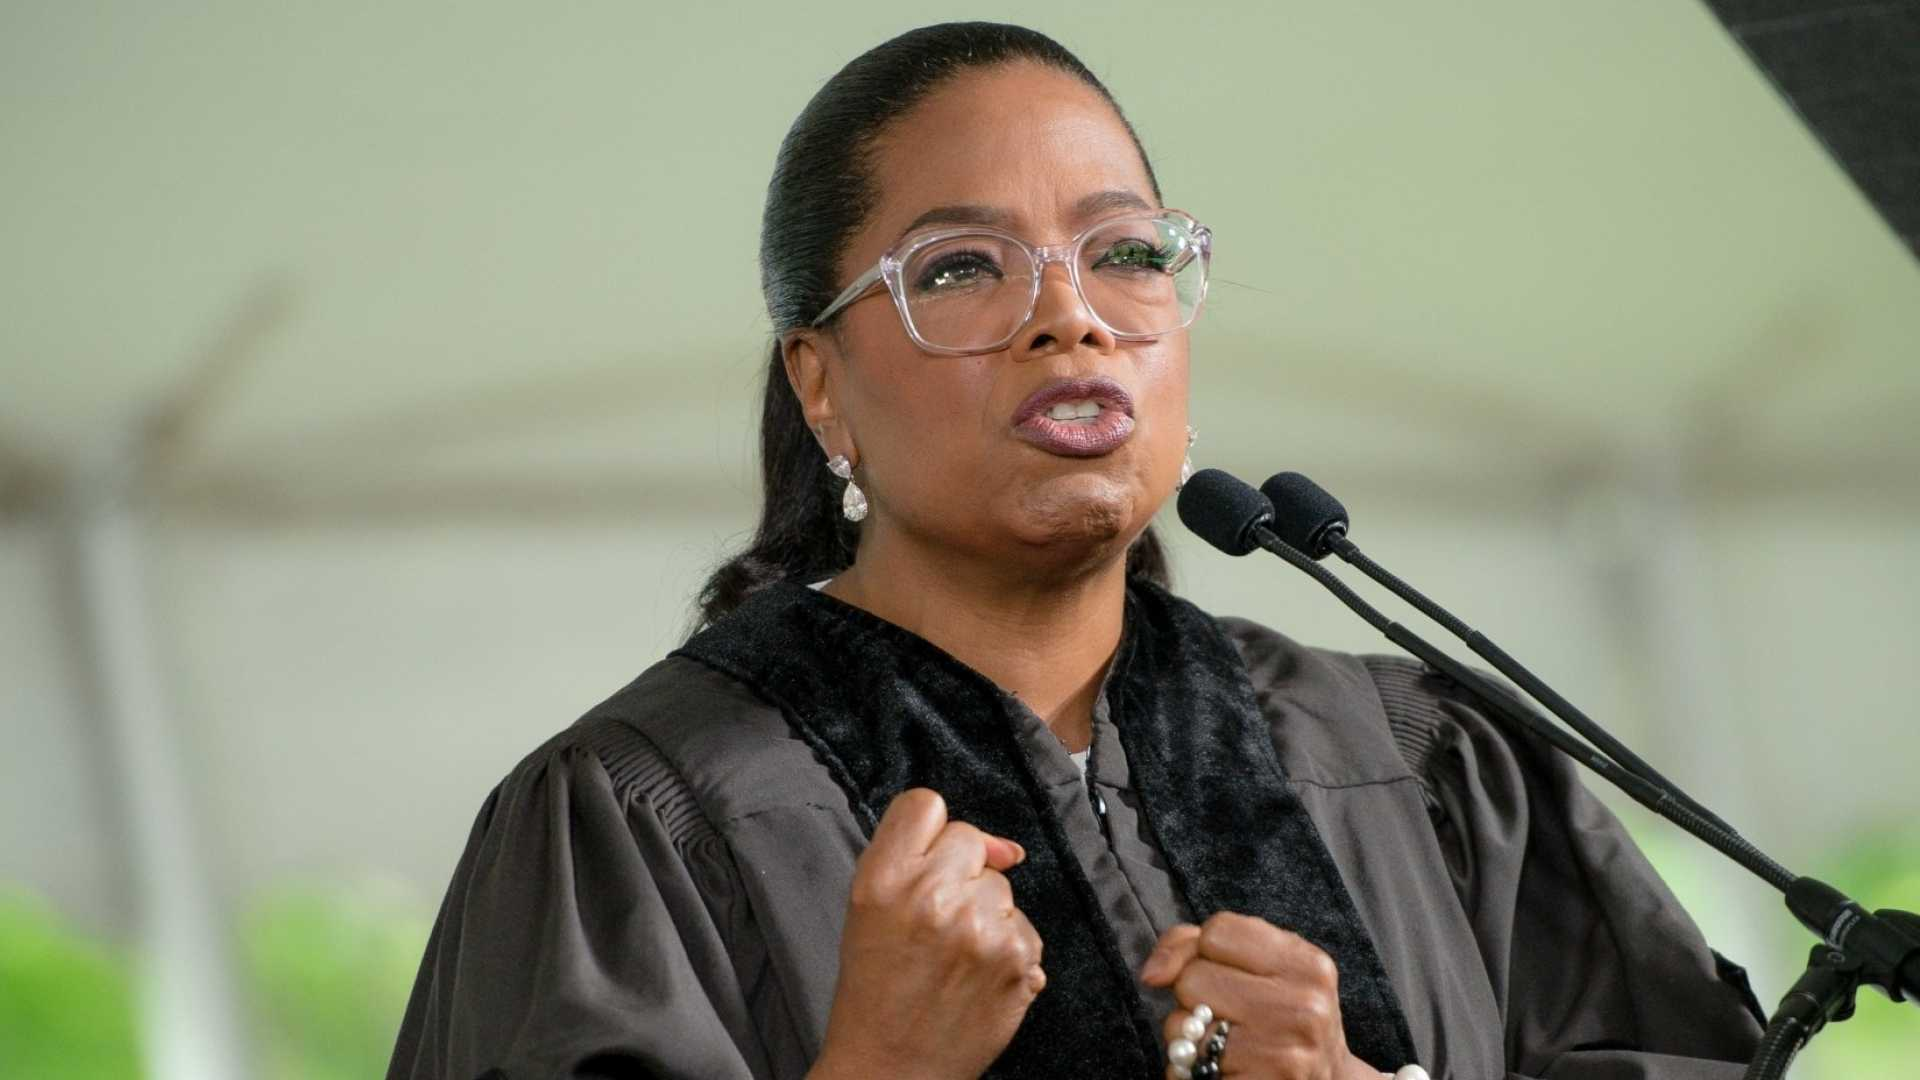 Oprah Winfrey Just Gave Graduates 3 Profound Truths About Failure, Legacy and Success